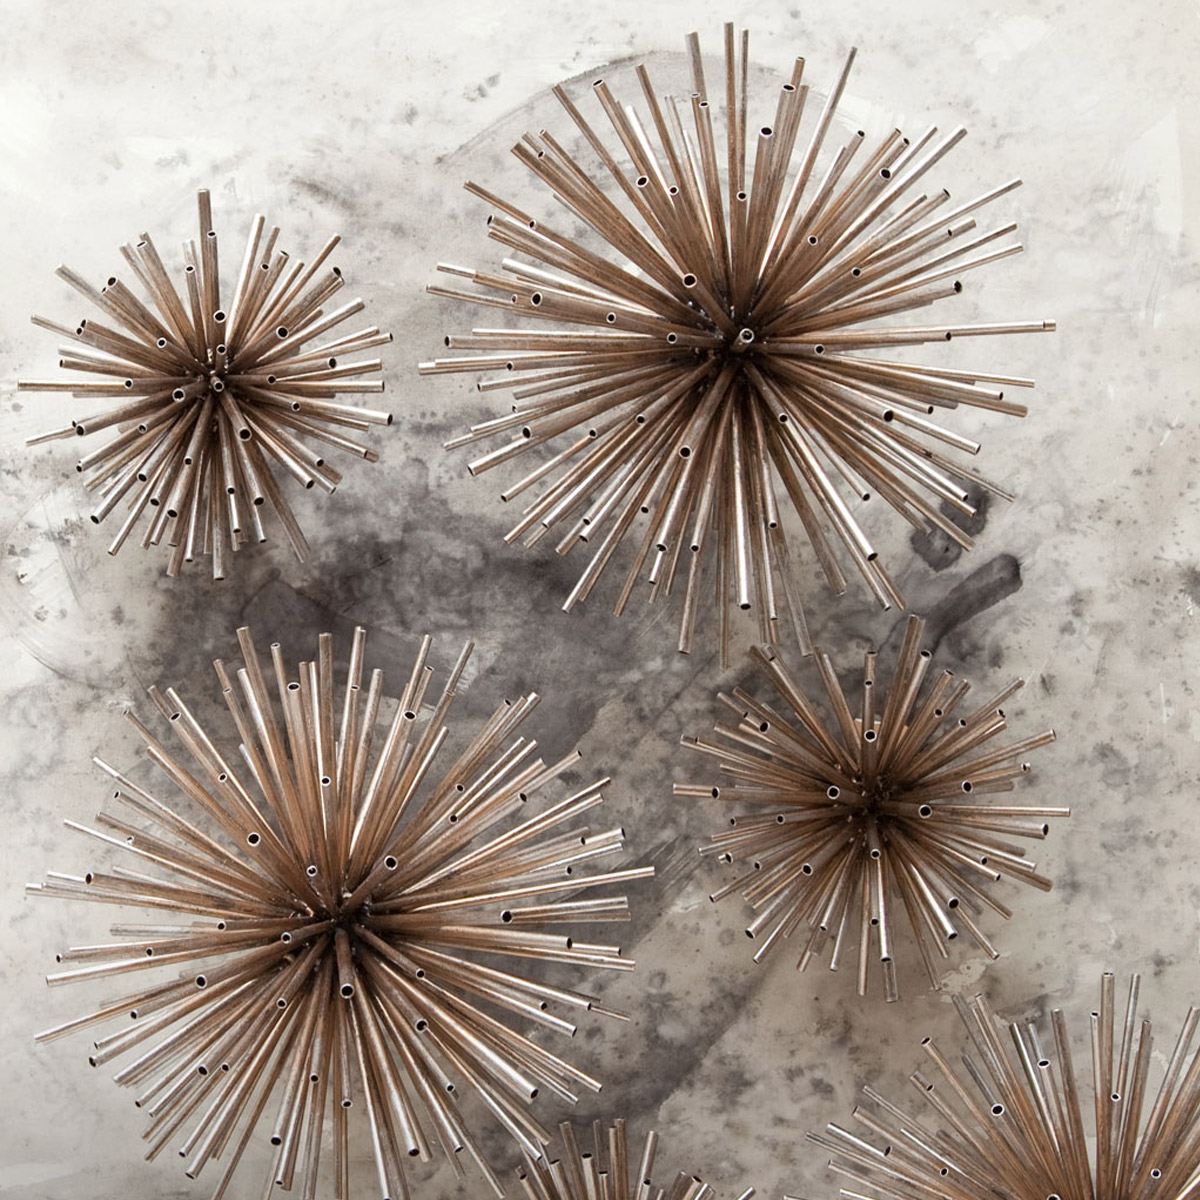 26 beautiful burgundy accents for fall home d 233 cor digsdigs - Metal Spike Wall Sculpture Mercana